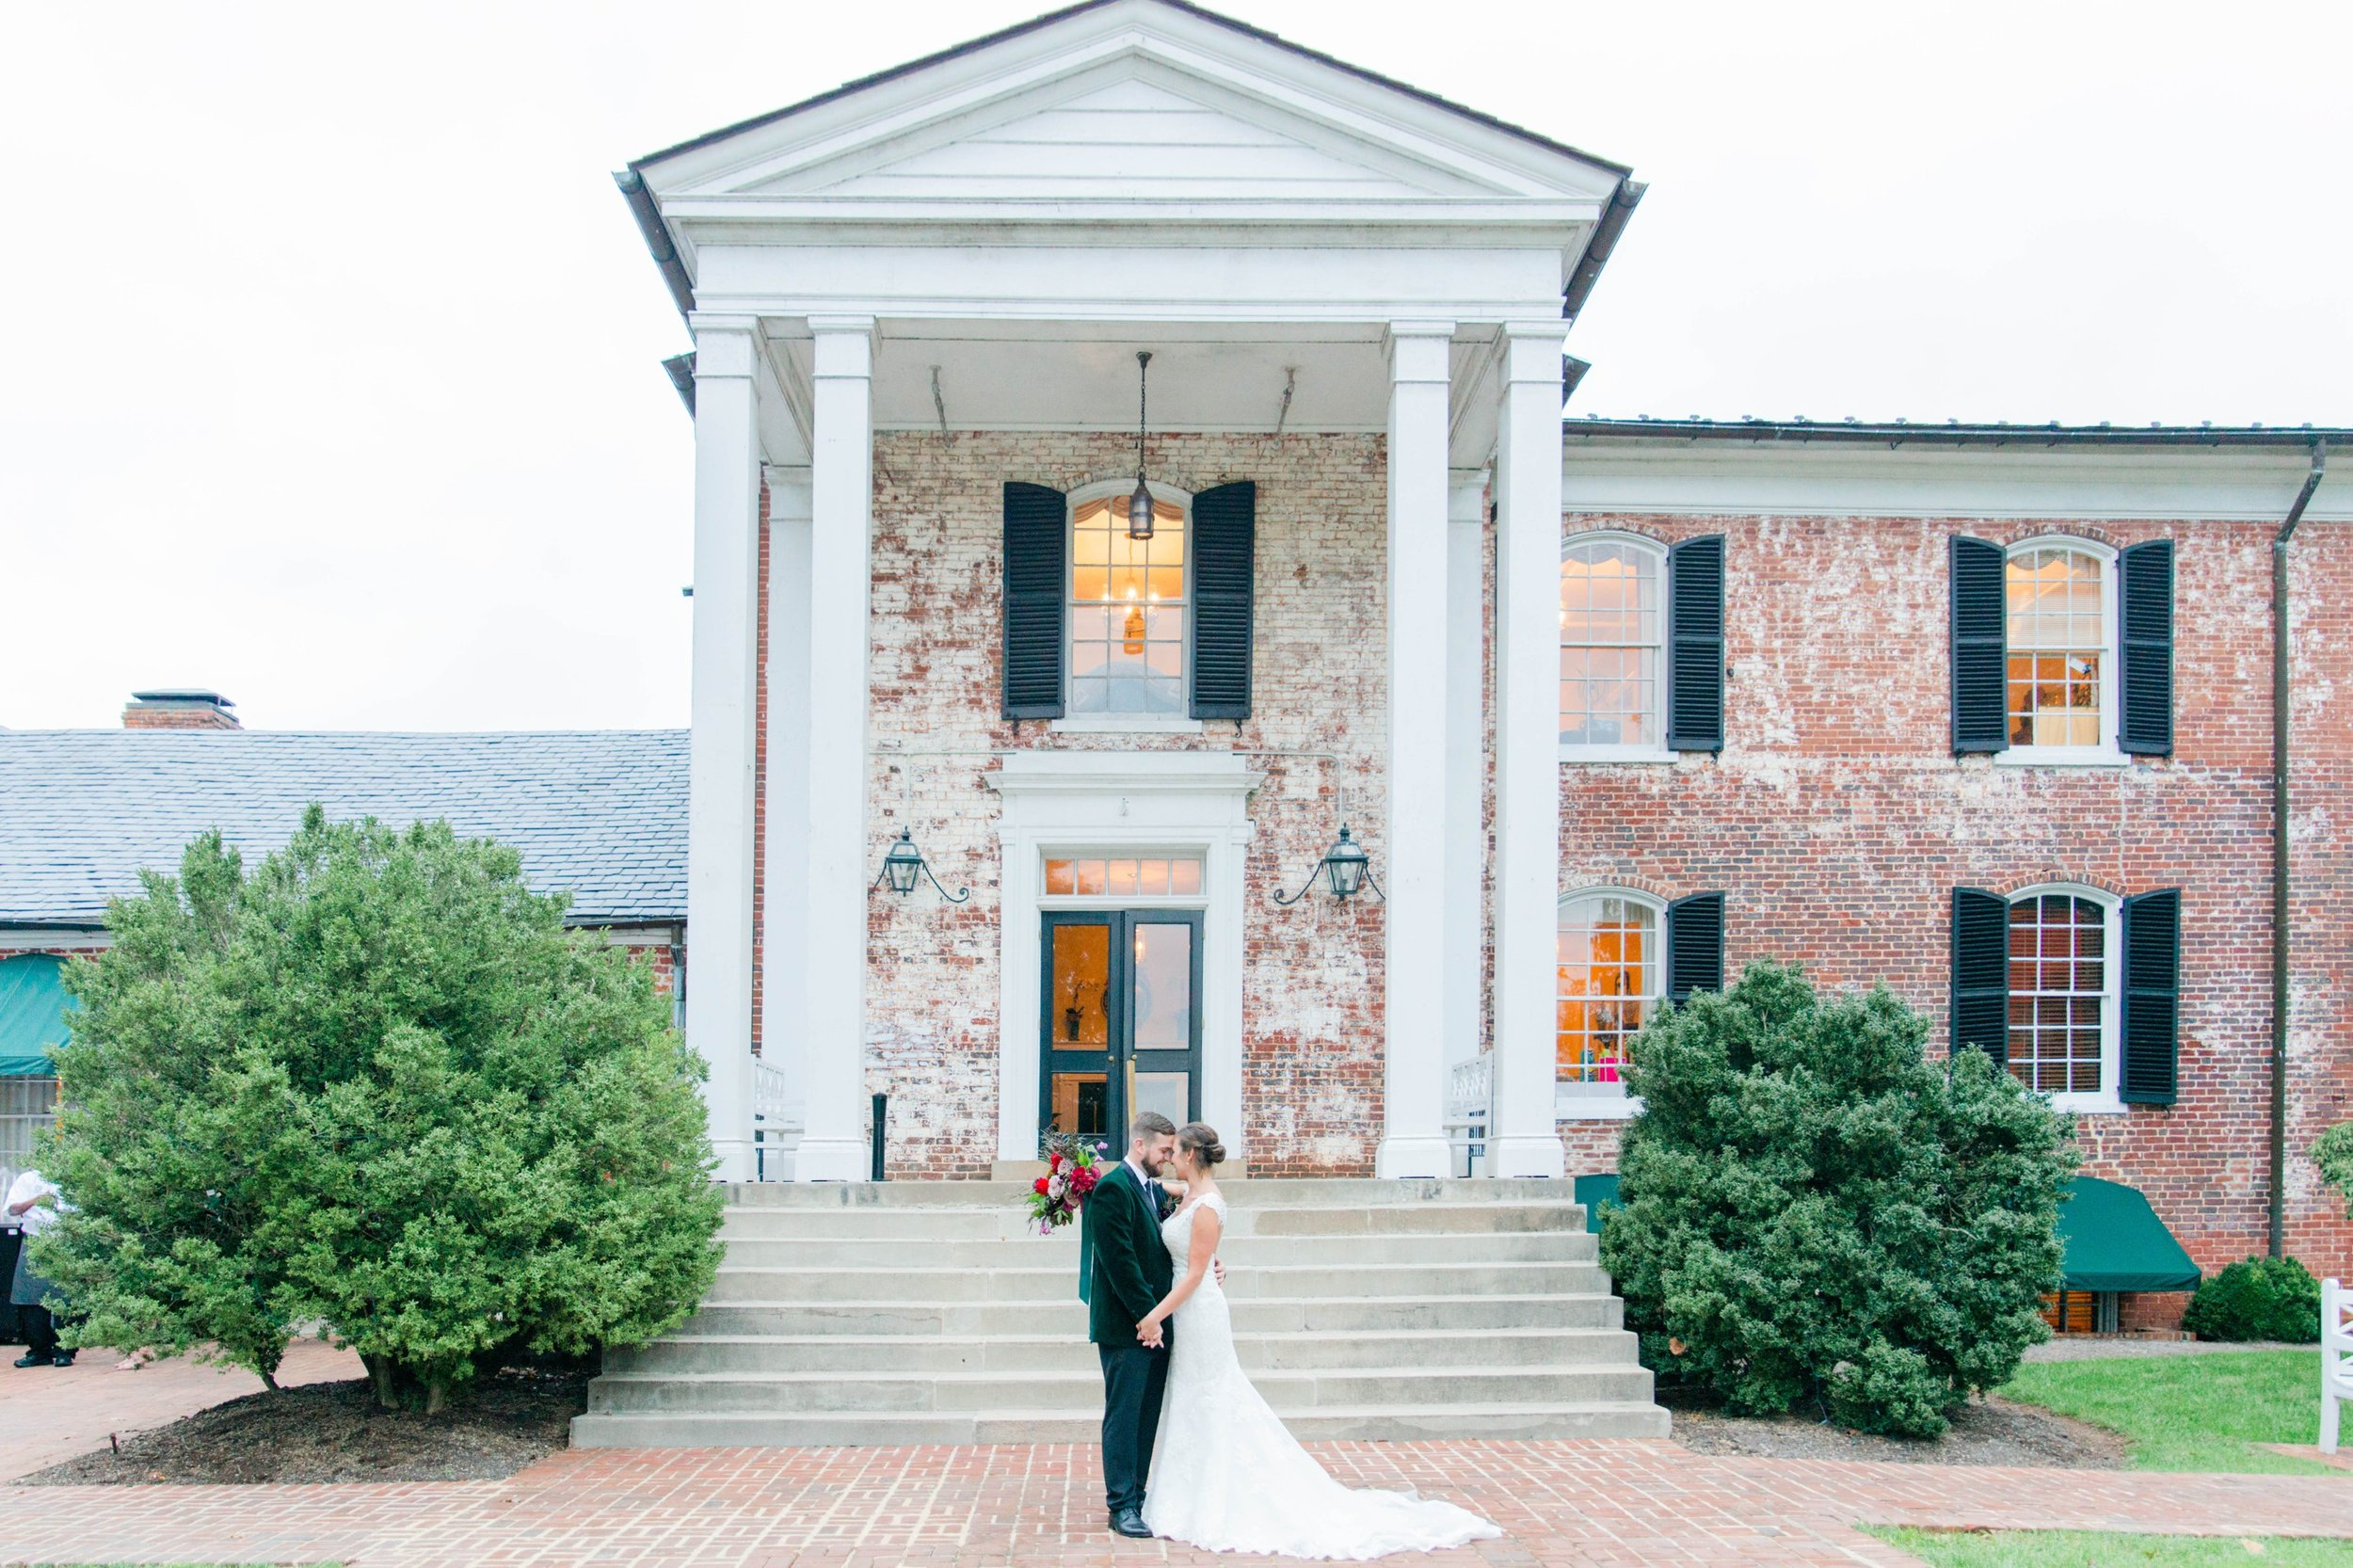 Gordan+Lauren_BoonsboroCountryClubWedding_Virginiaweddingphotographer_LynchburgVi 41.jpg